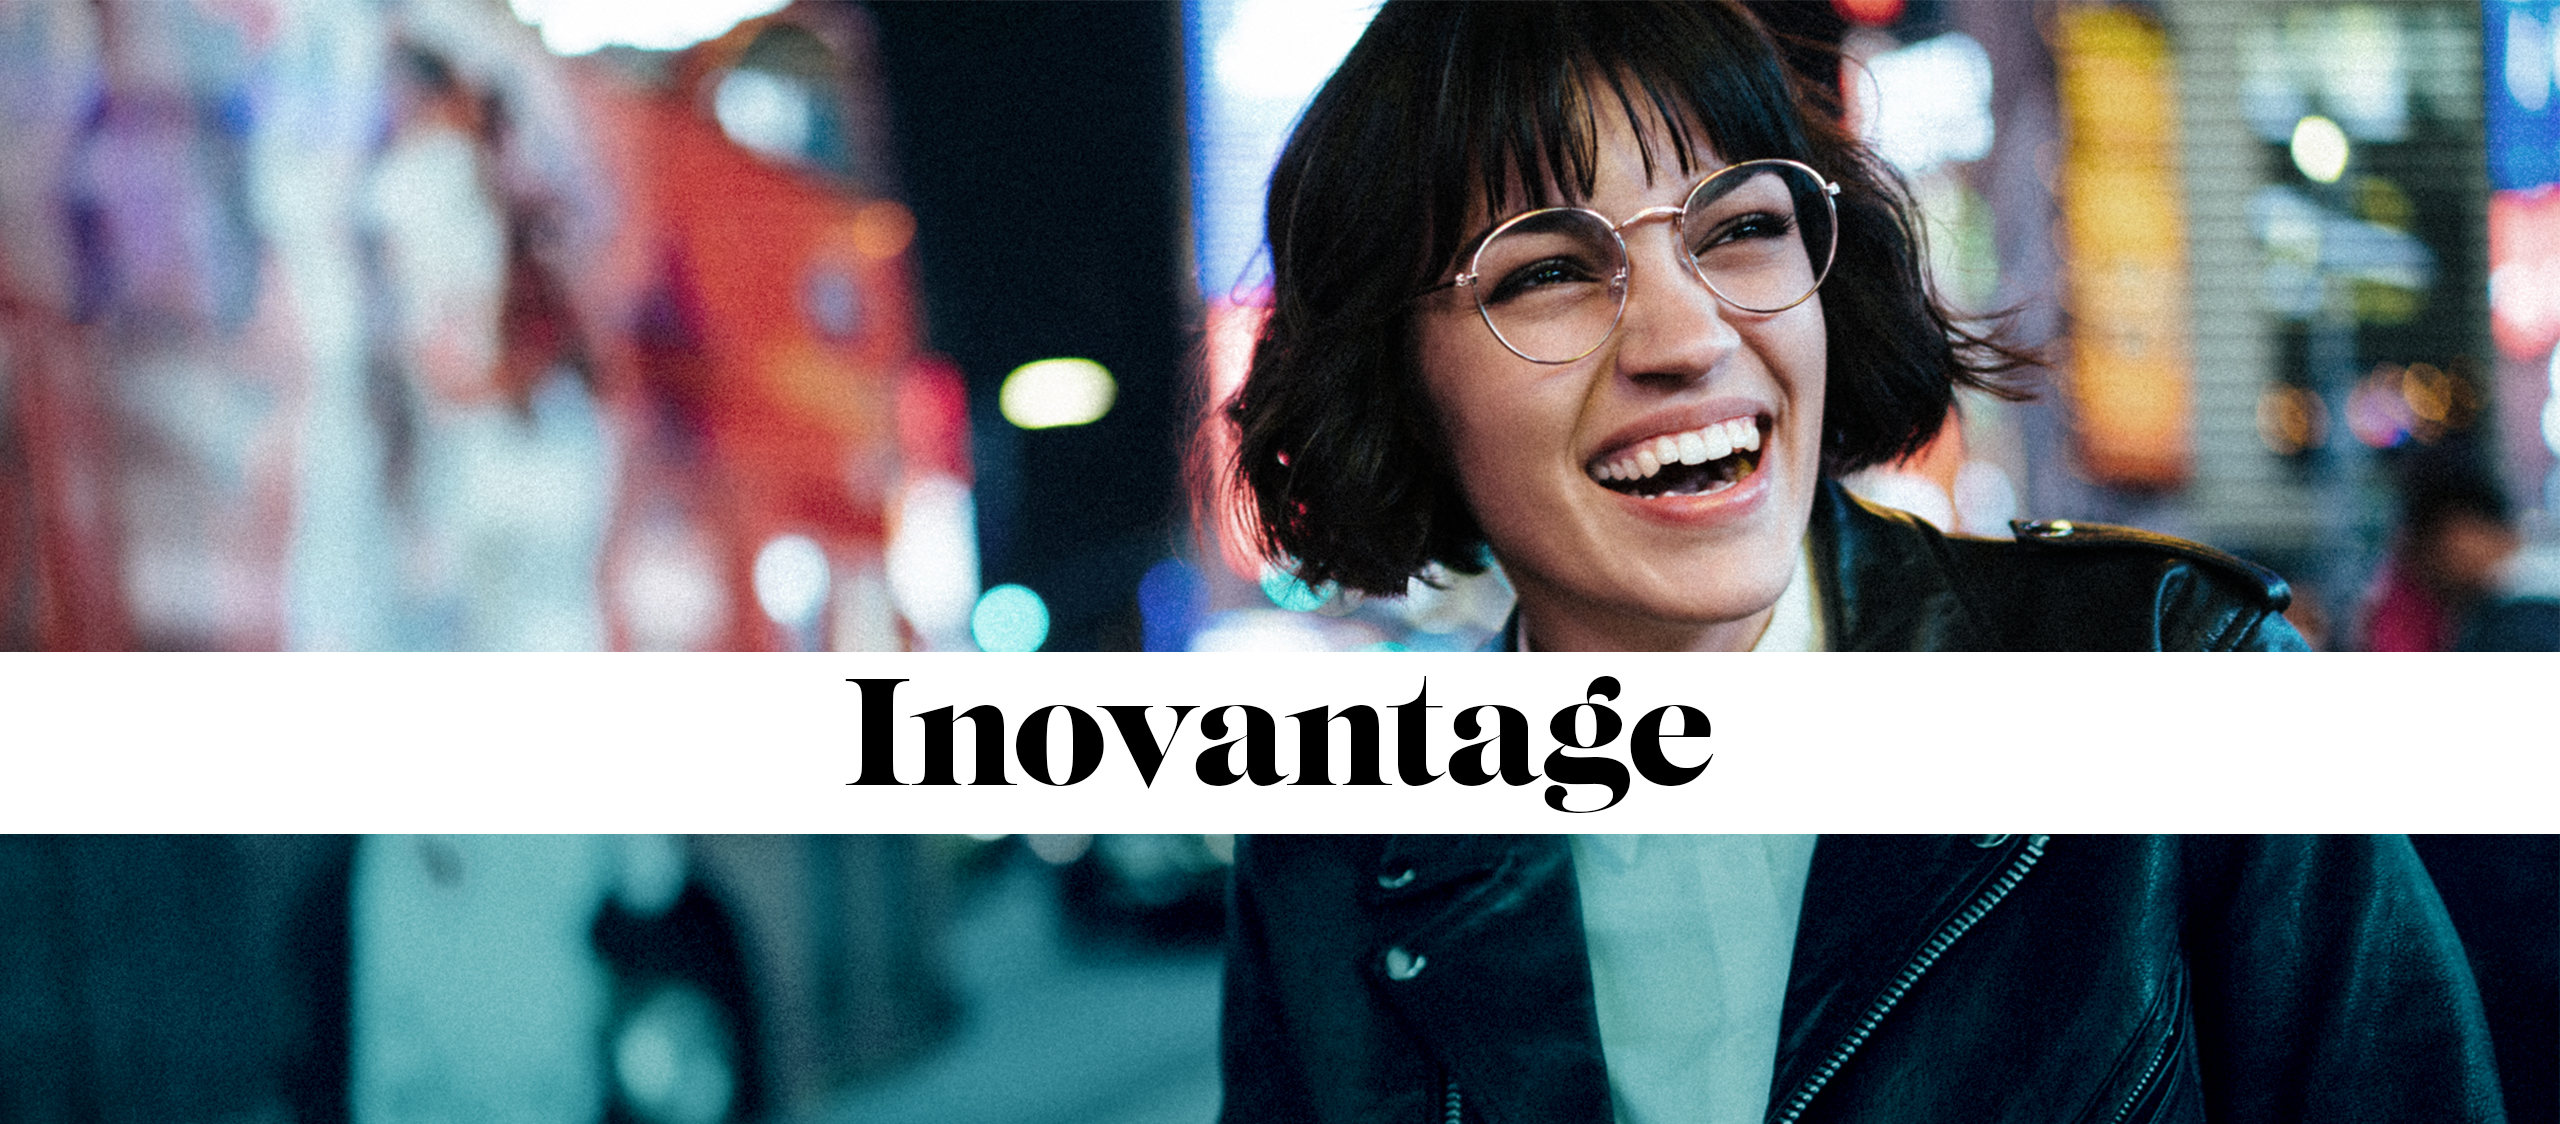 Inovantage Workforce Investment